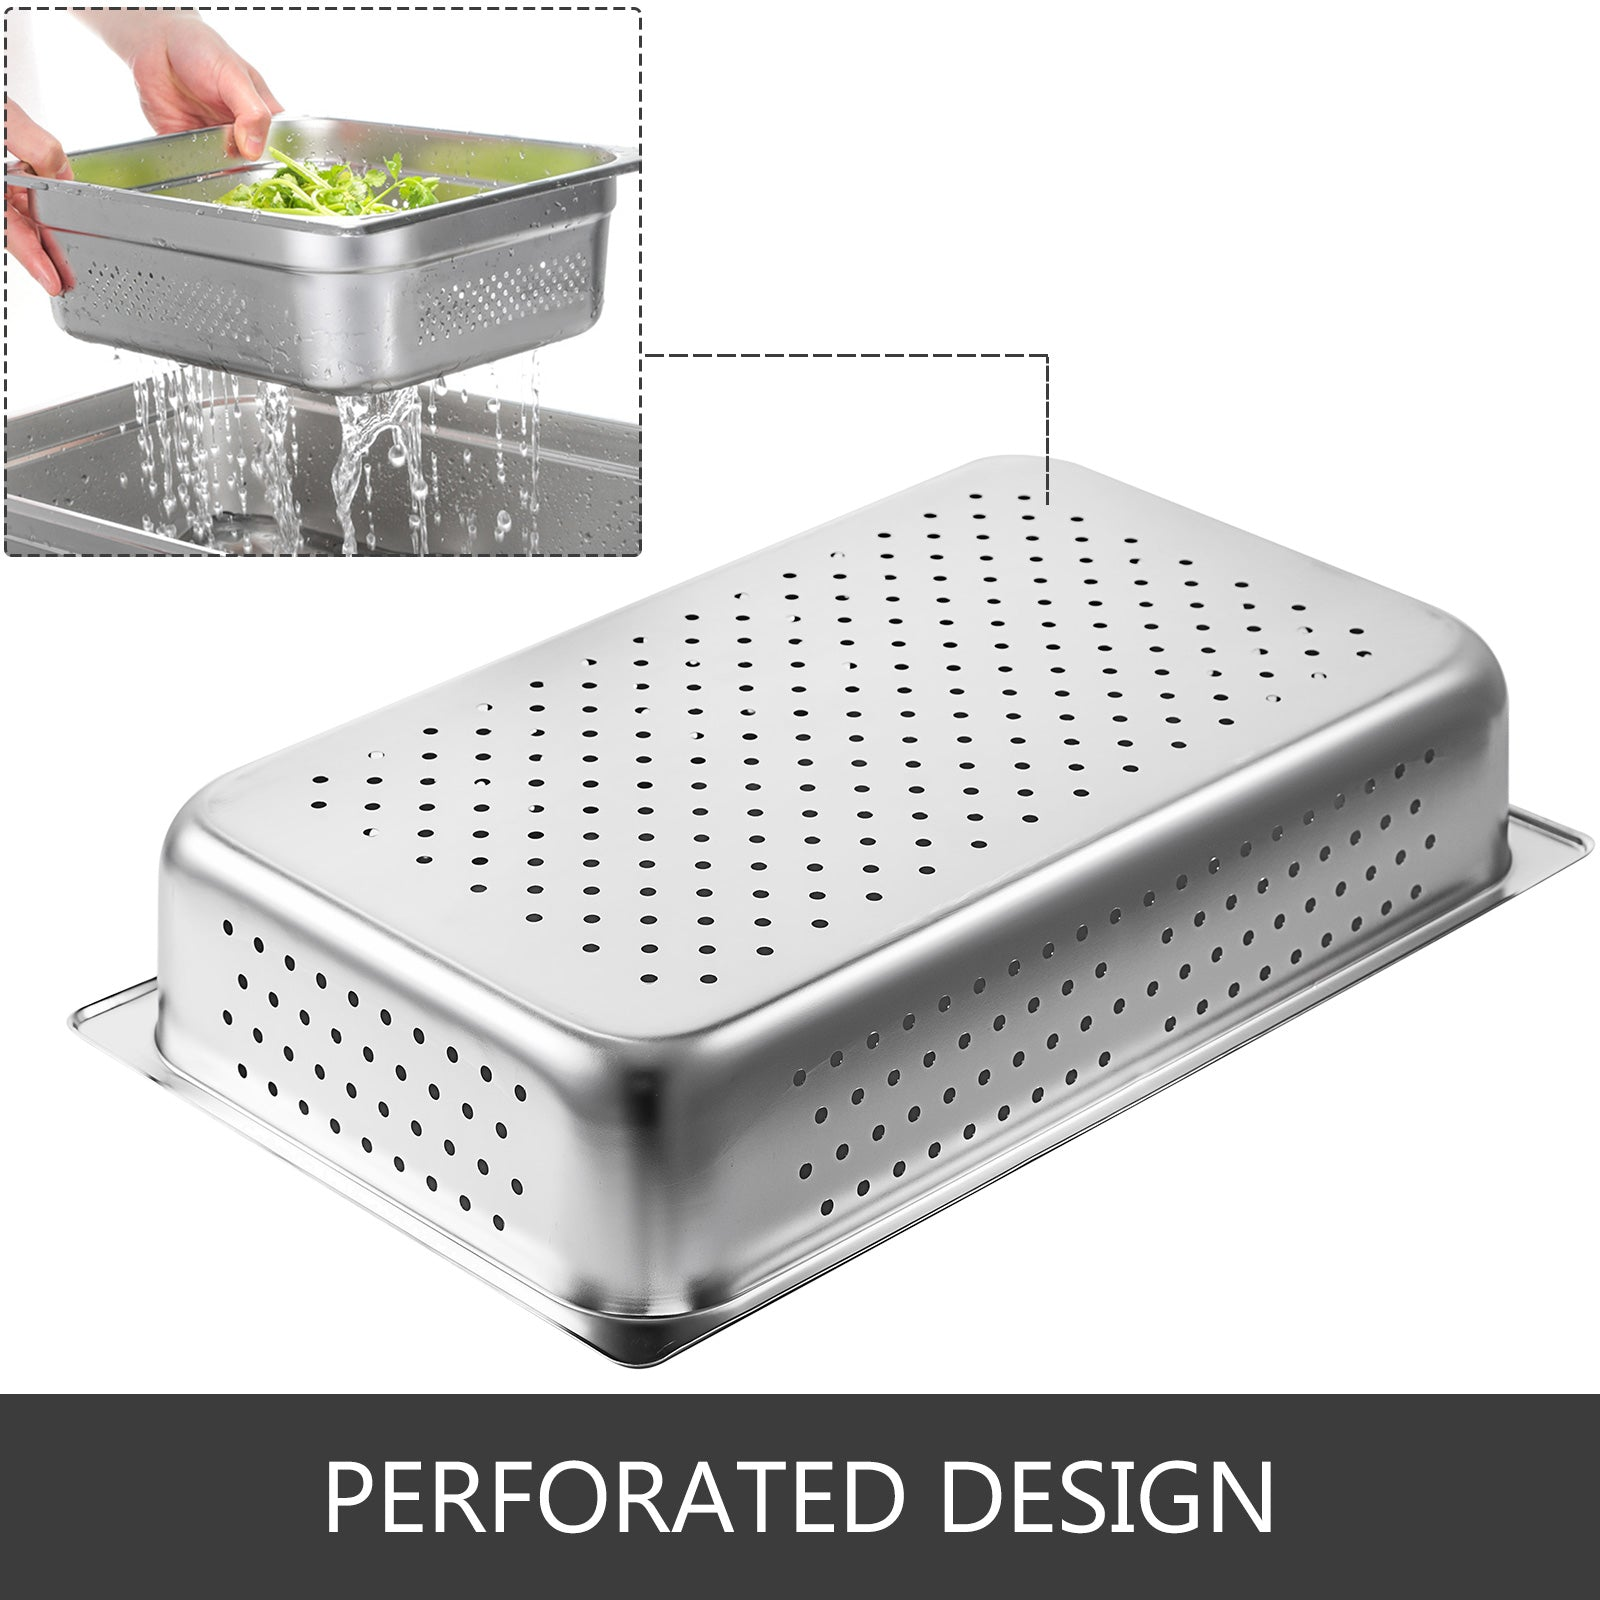 "4x Perforated Steam Table Pans Full Size 4"" Deep Bain-marie Catering Food Warmer"